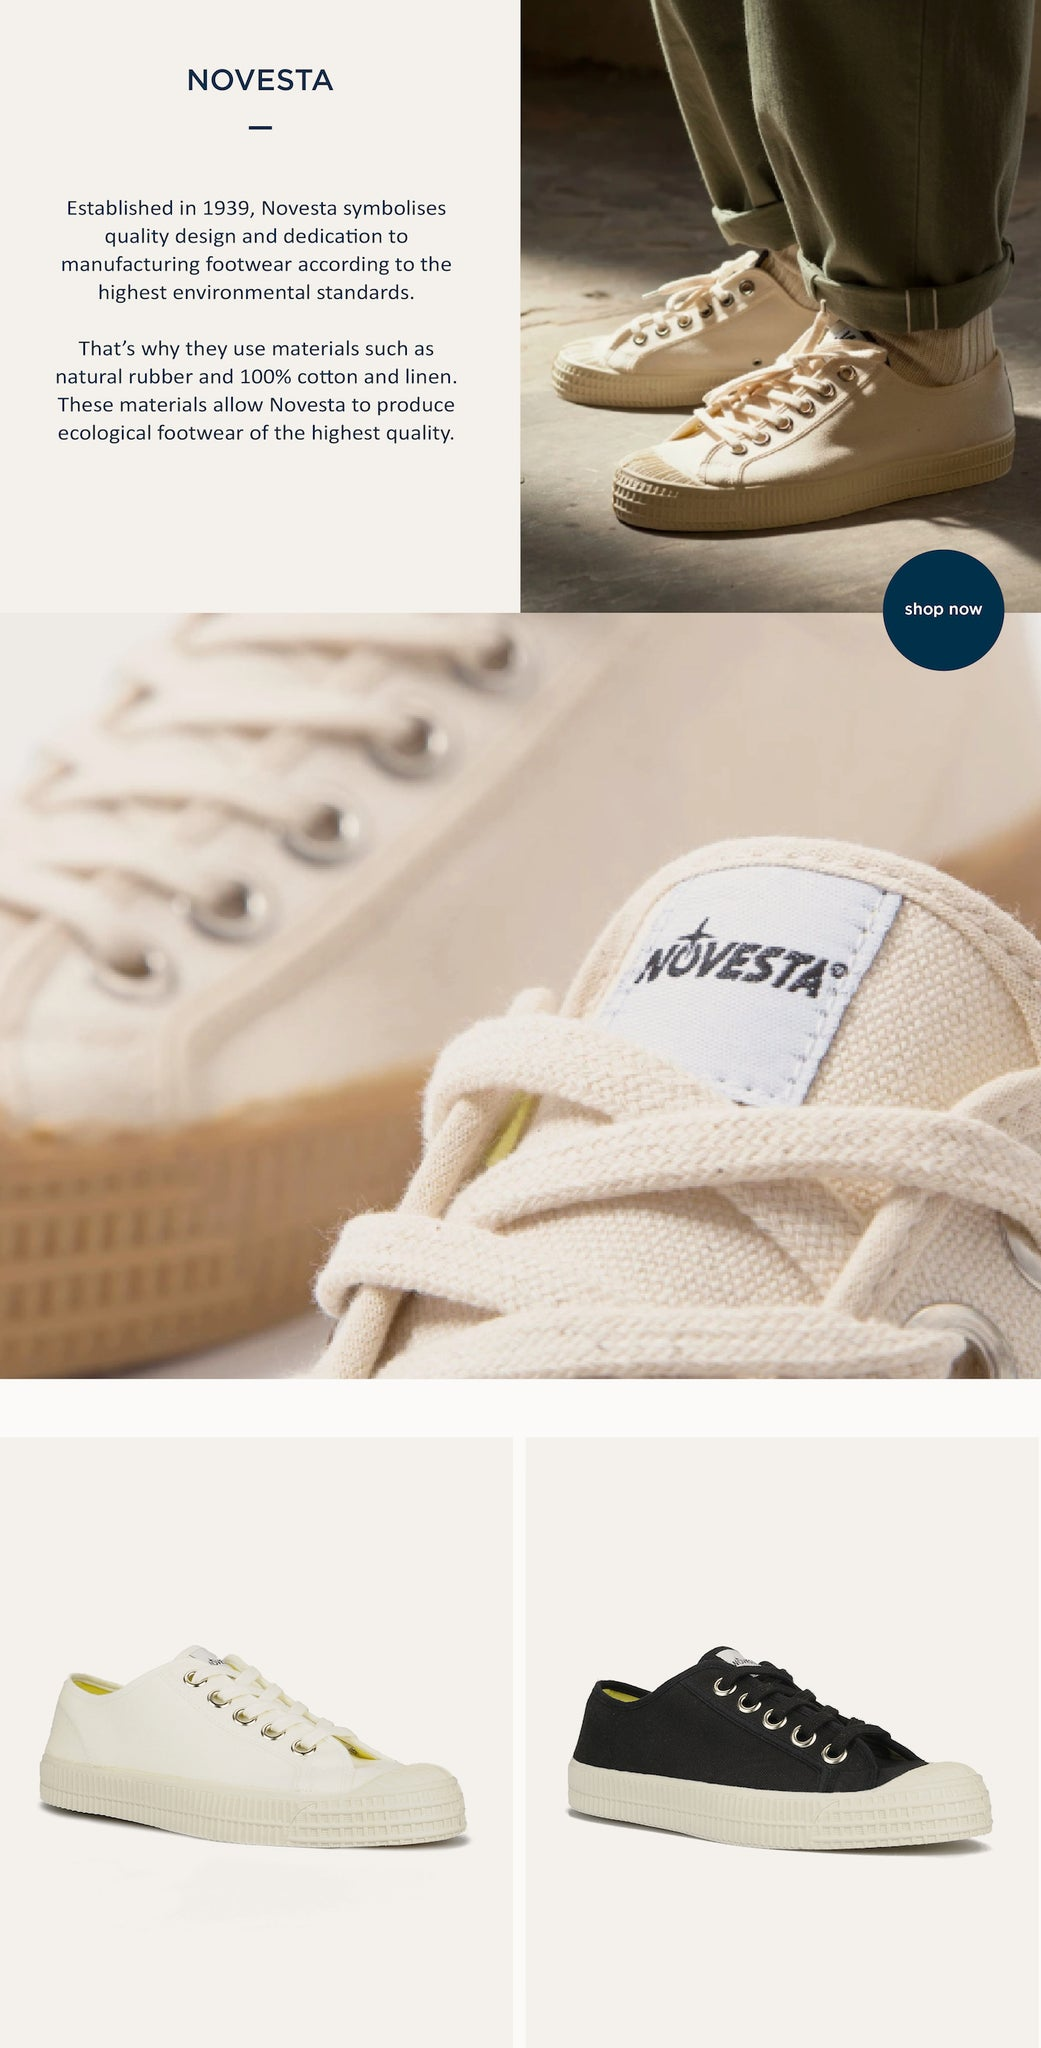 Paper Plane - Novesta Shoes - Ethical - Mount Maunganui Stockist